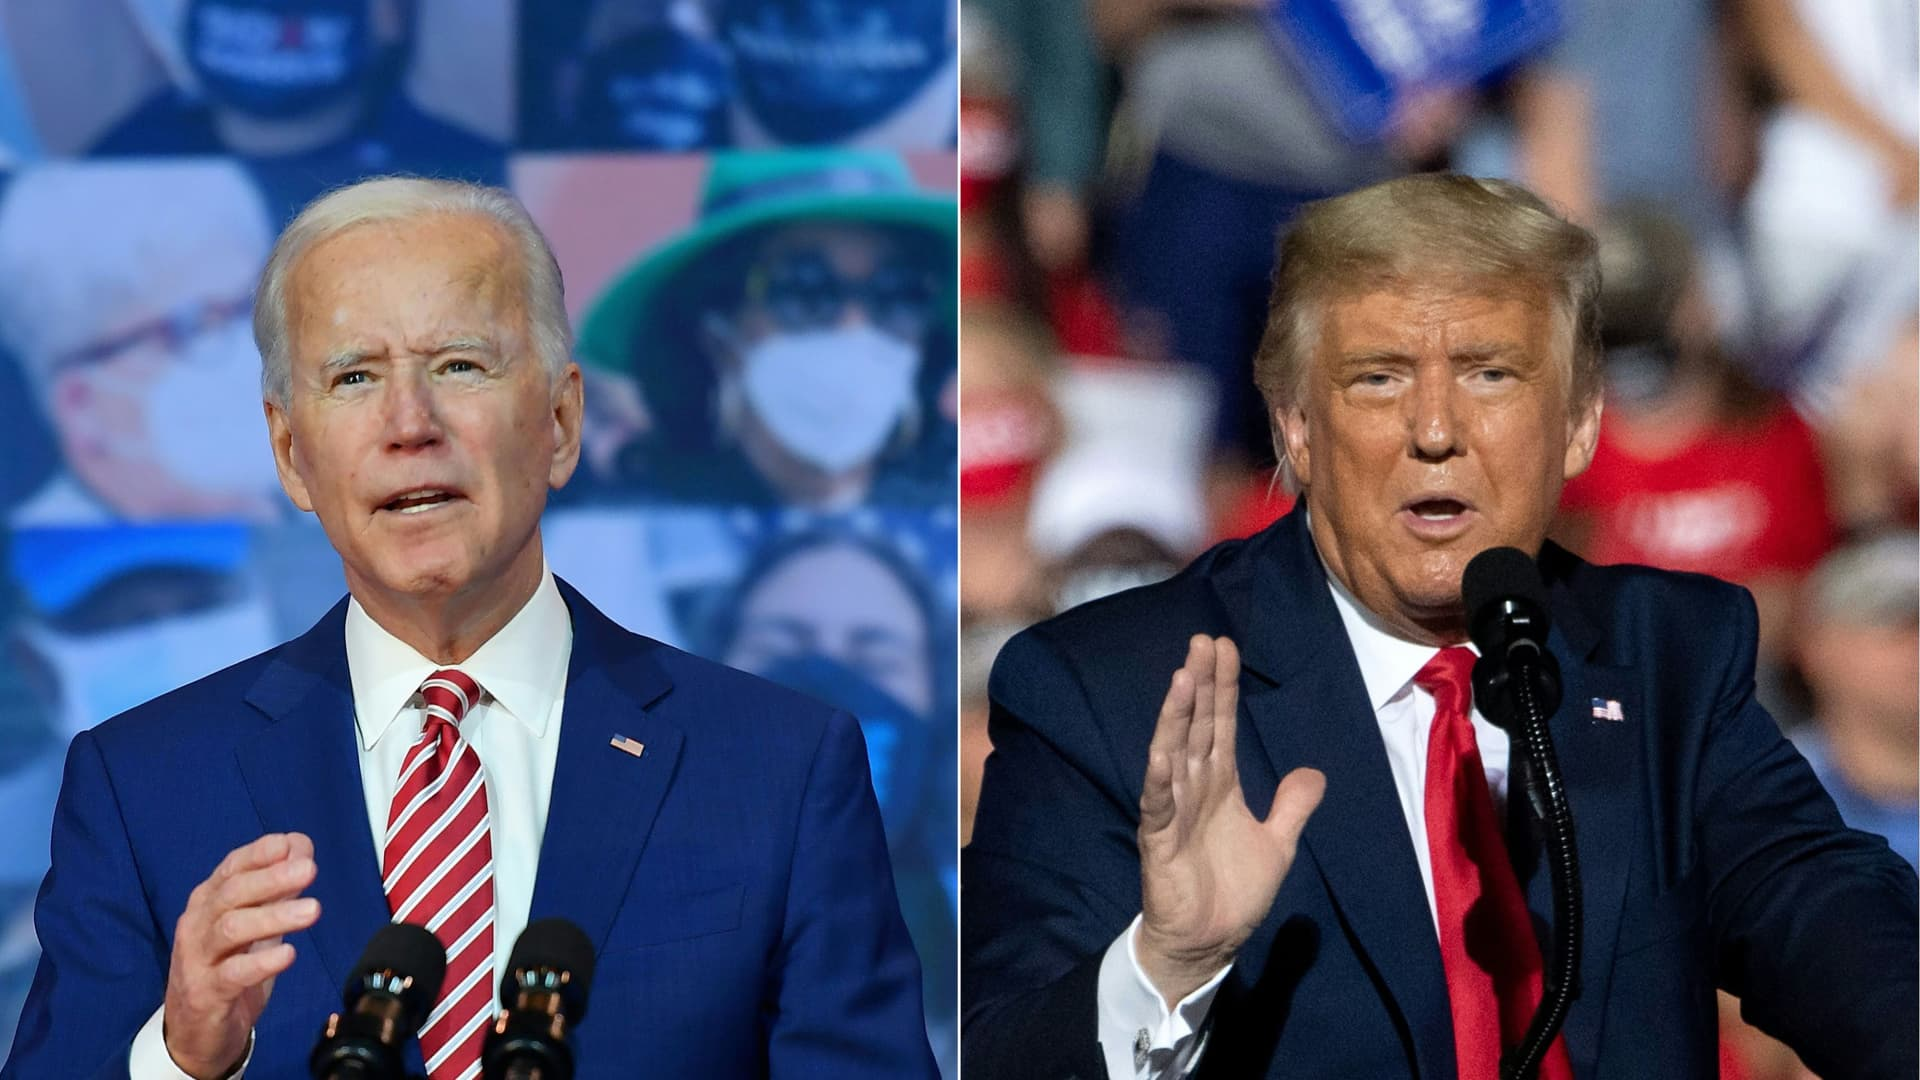 Democratic President-elect Joe Biden delivering remarks on Covid-19 at The Queen theater on Oct. 23, 2020 in Wilmington, Delaware and U.S. President Donald Trump addressing supporters during a Make America Great Again rally in Gastonia, North Carolina, Oct. 21, 2020.